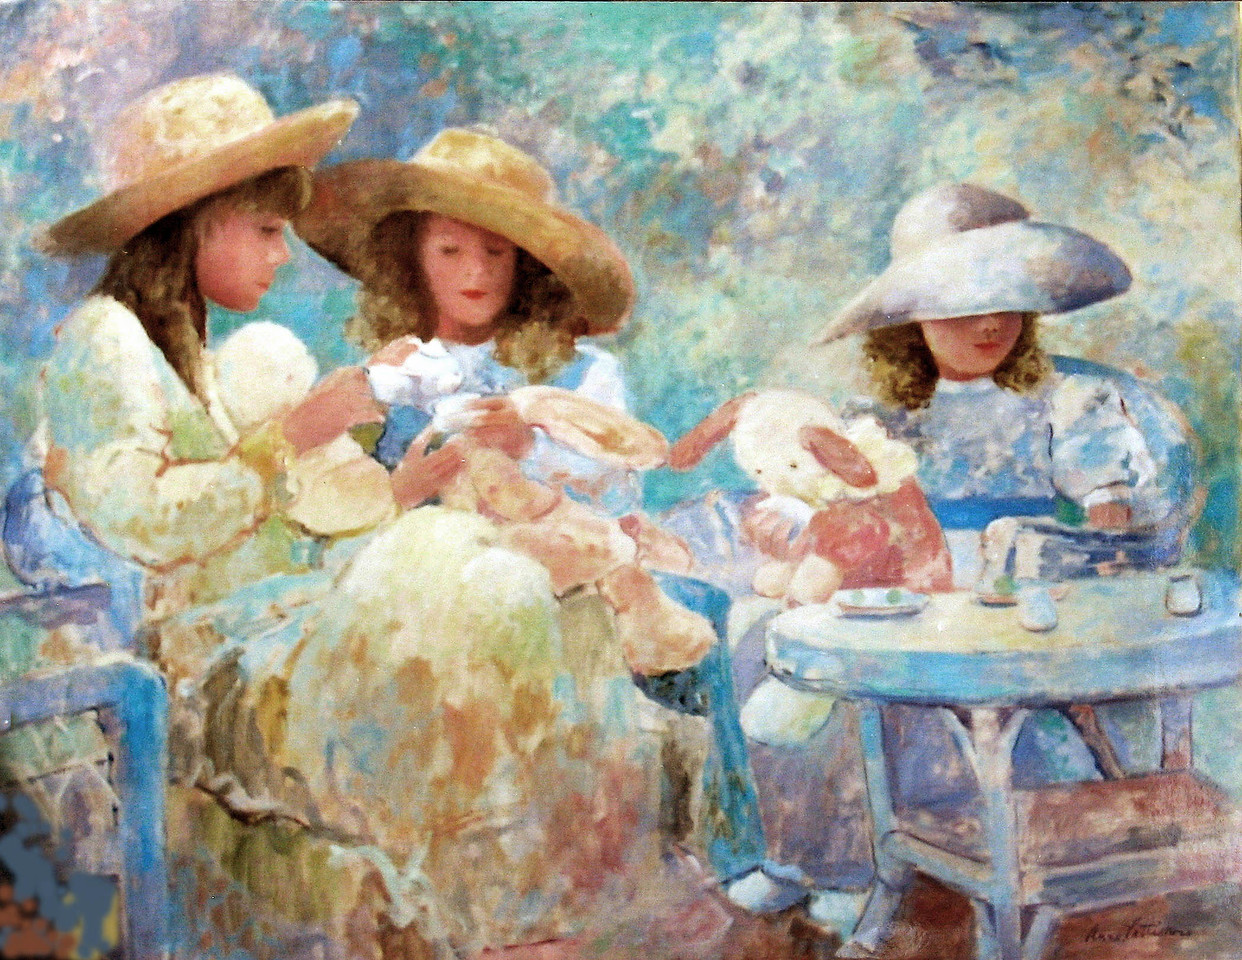 Susan and Meg's Girl's, Private Collection